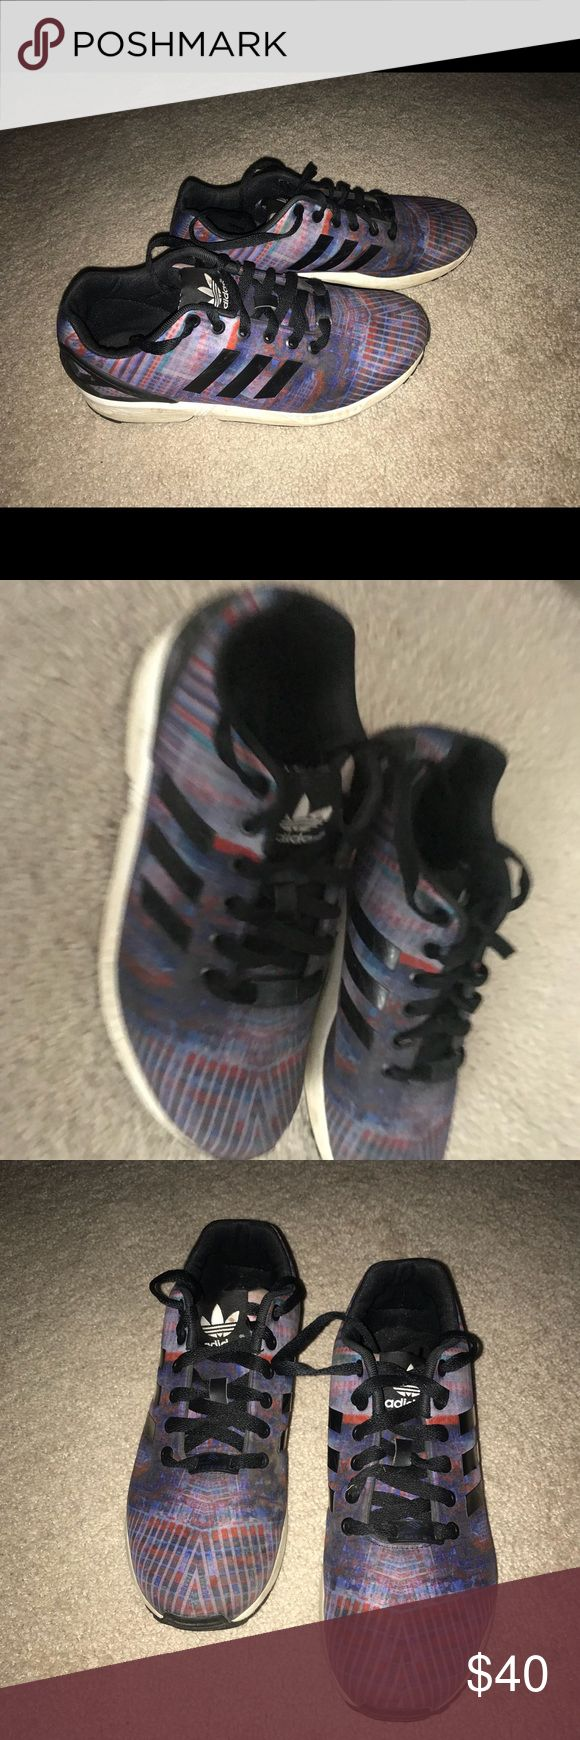 Adidas Torsion ZX FLUX Adidas Torsion ZX FLUX Male Size 8. Great condition. See pics and soles. adidas Shoes Athletic Shoes